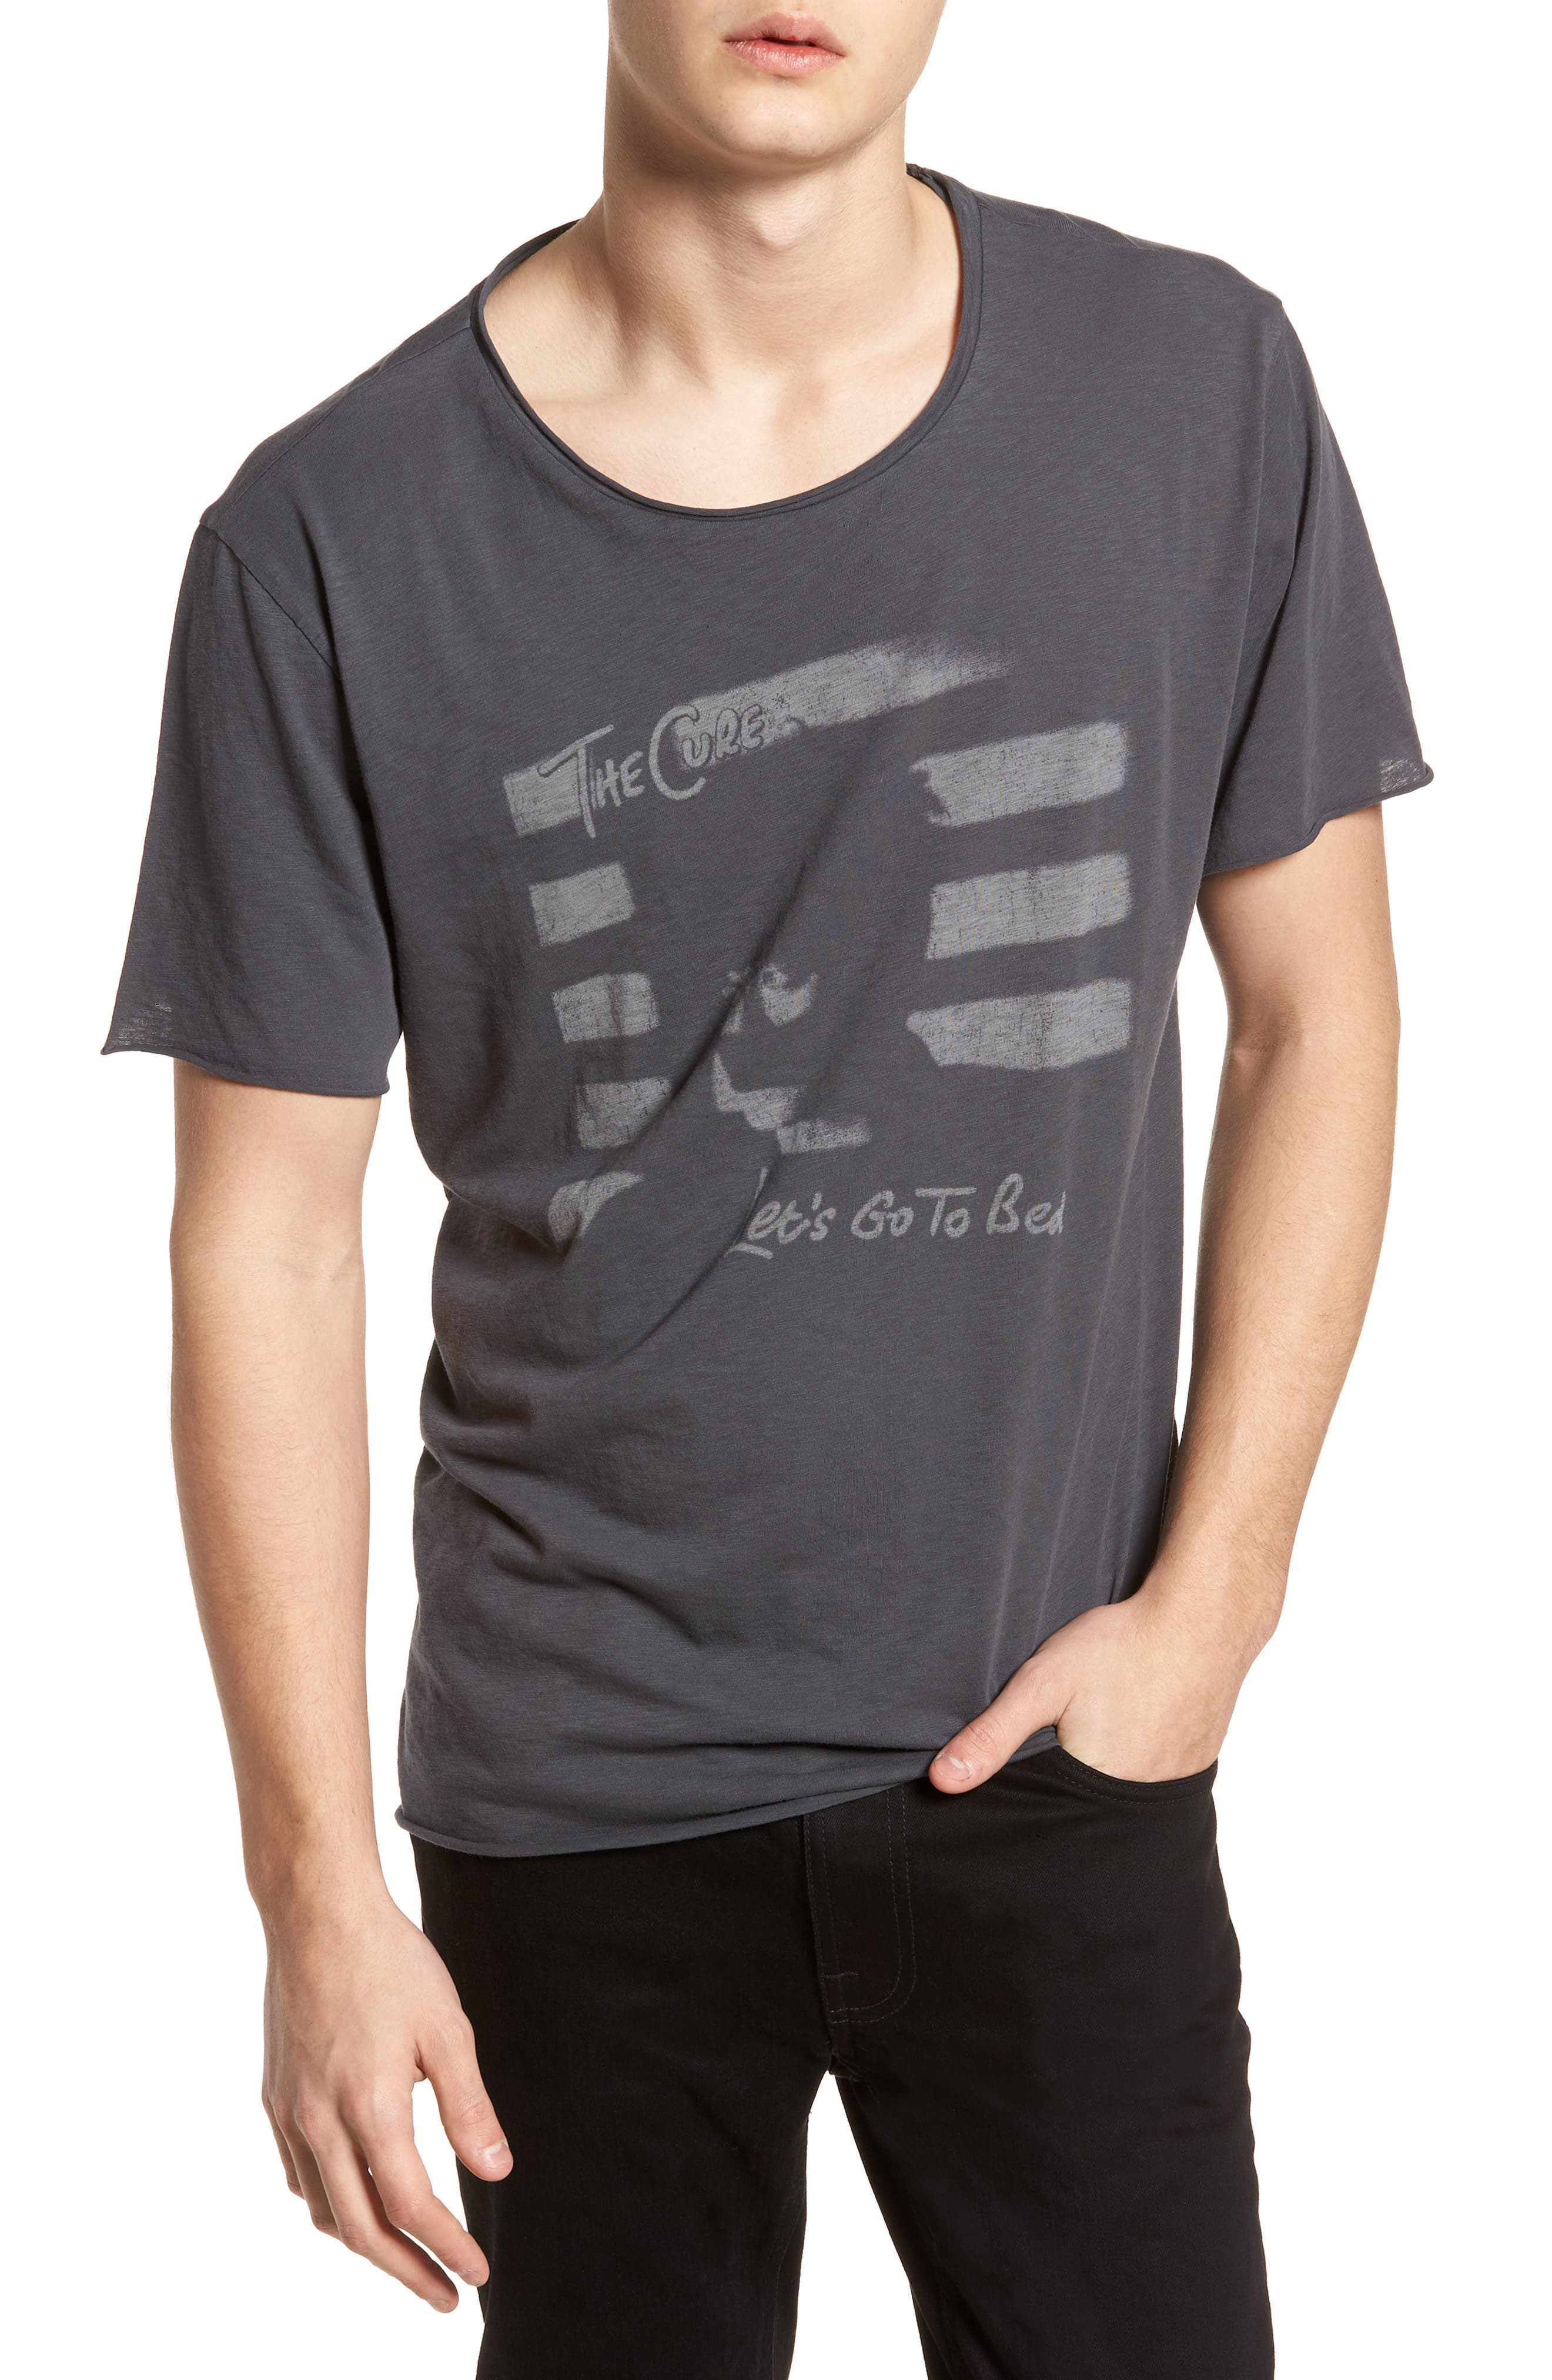 The Cure Crewneck T-Shirt,                         Main,                         color, Grey The Cure